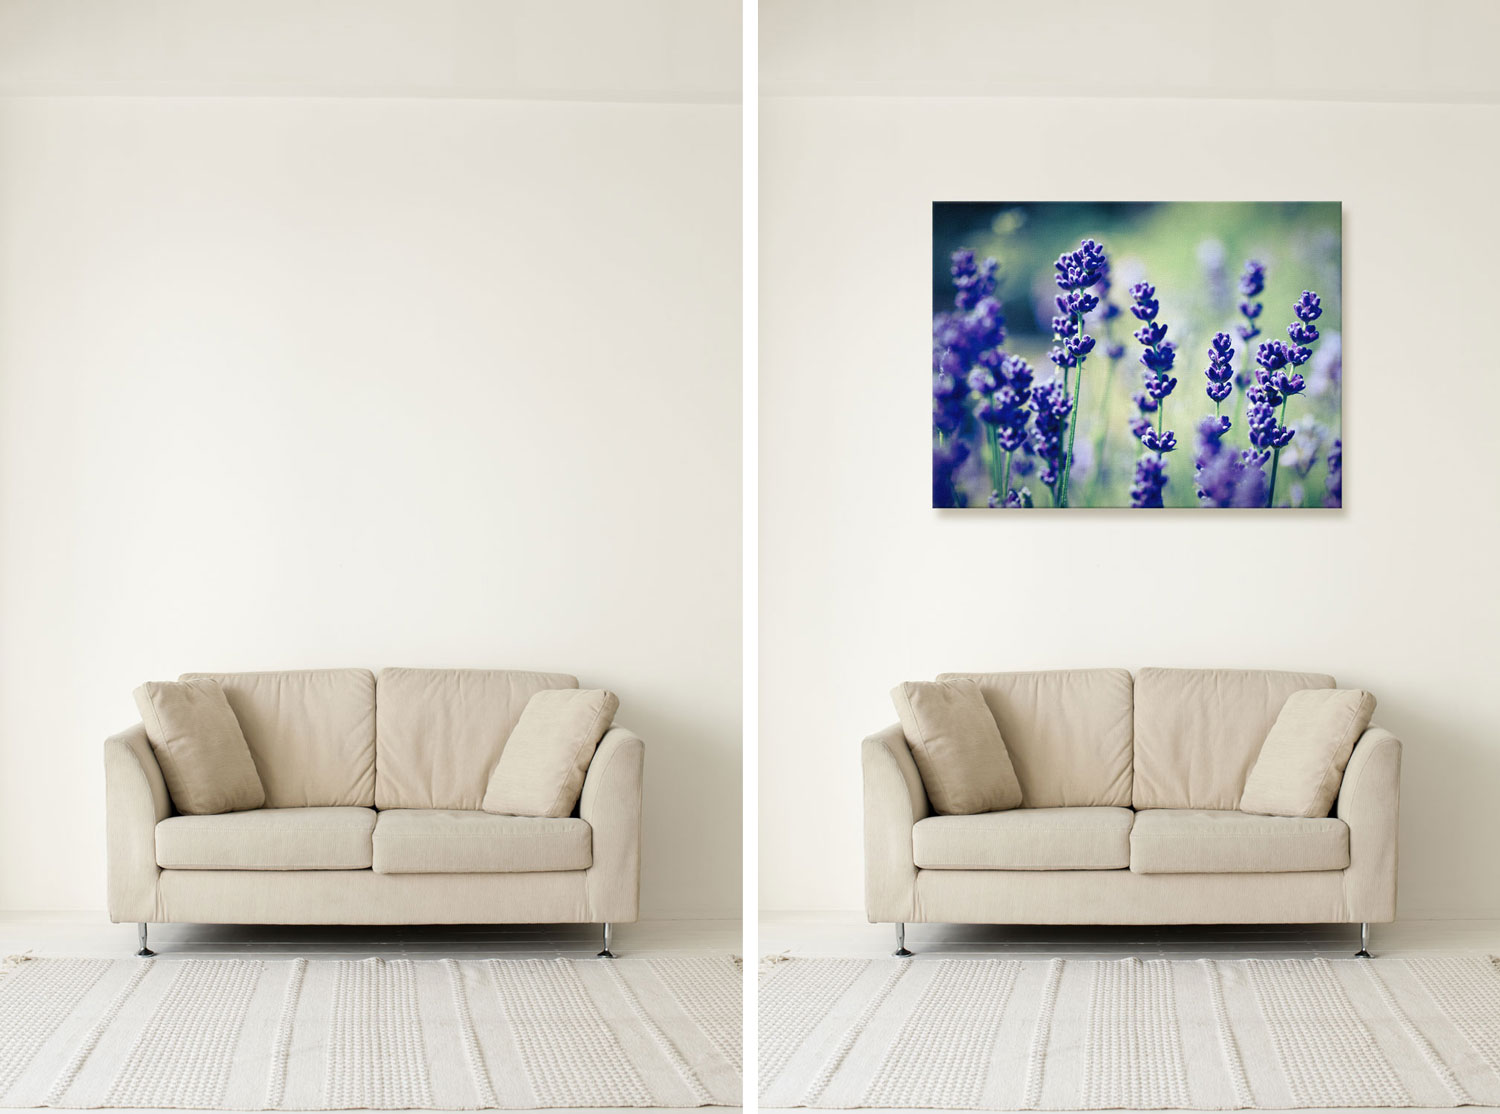 Create A Template To Display Your Image As A Mounted Canvas In